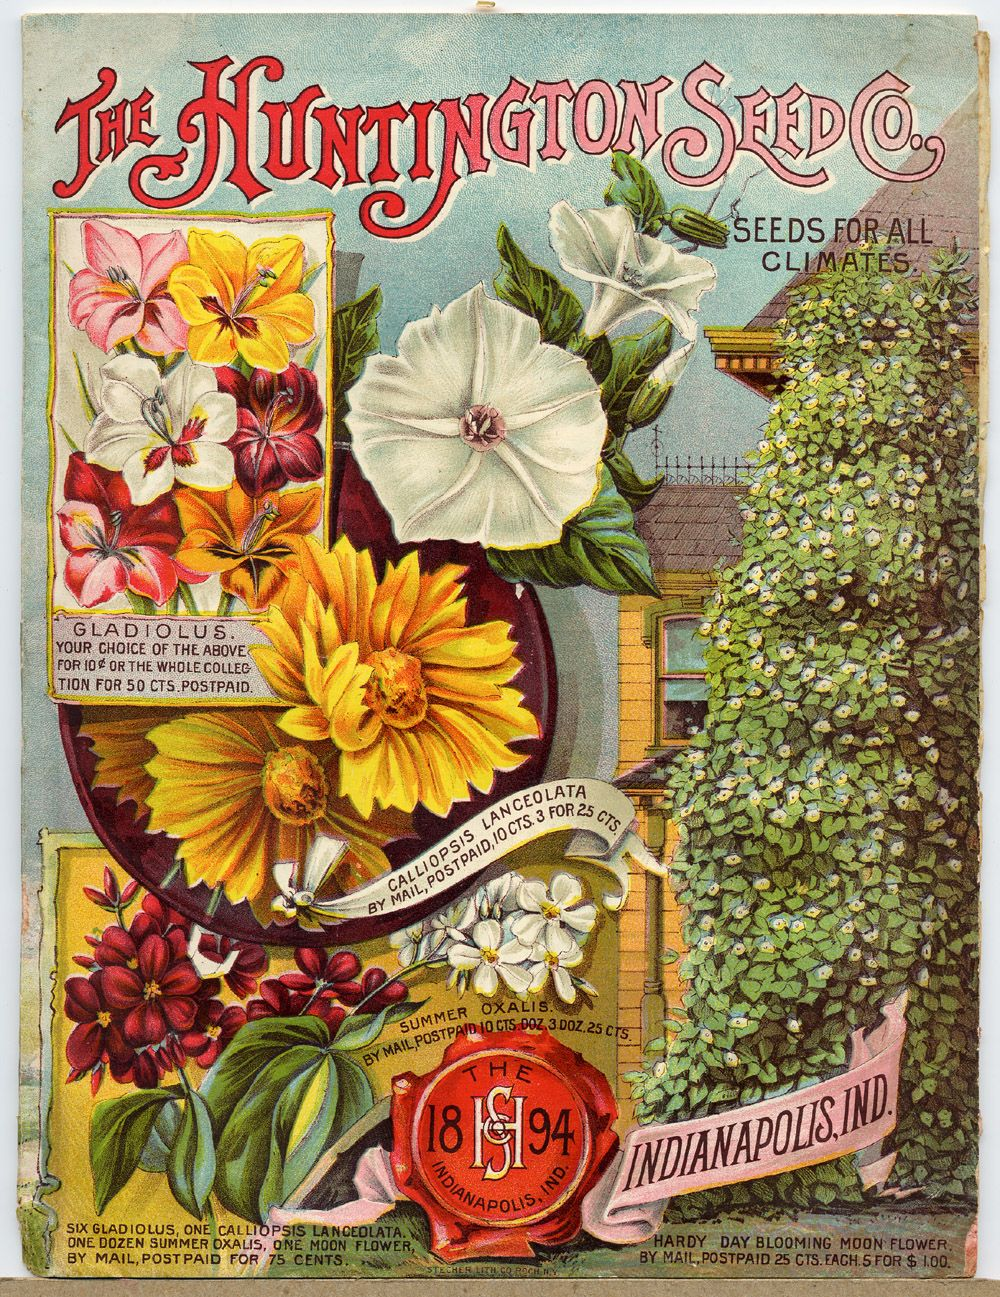 1898 Seed catalog cover featuring Morning Glories